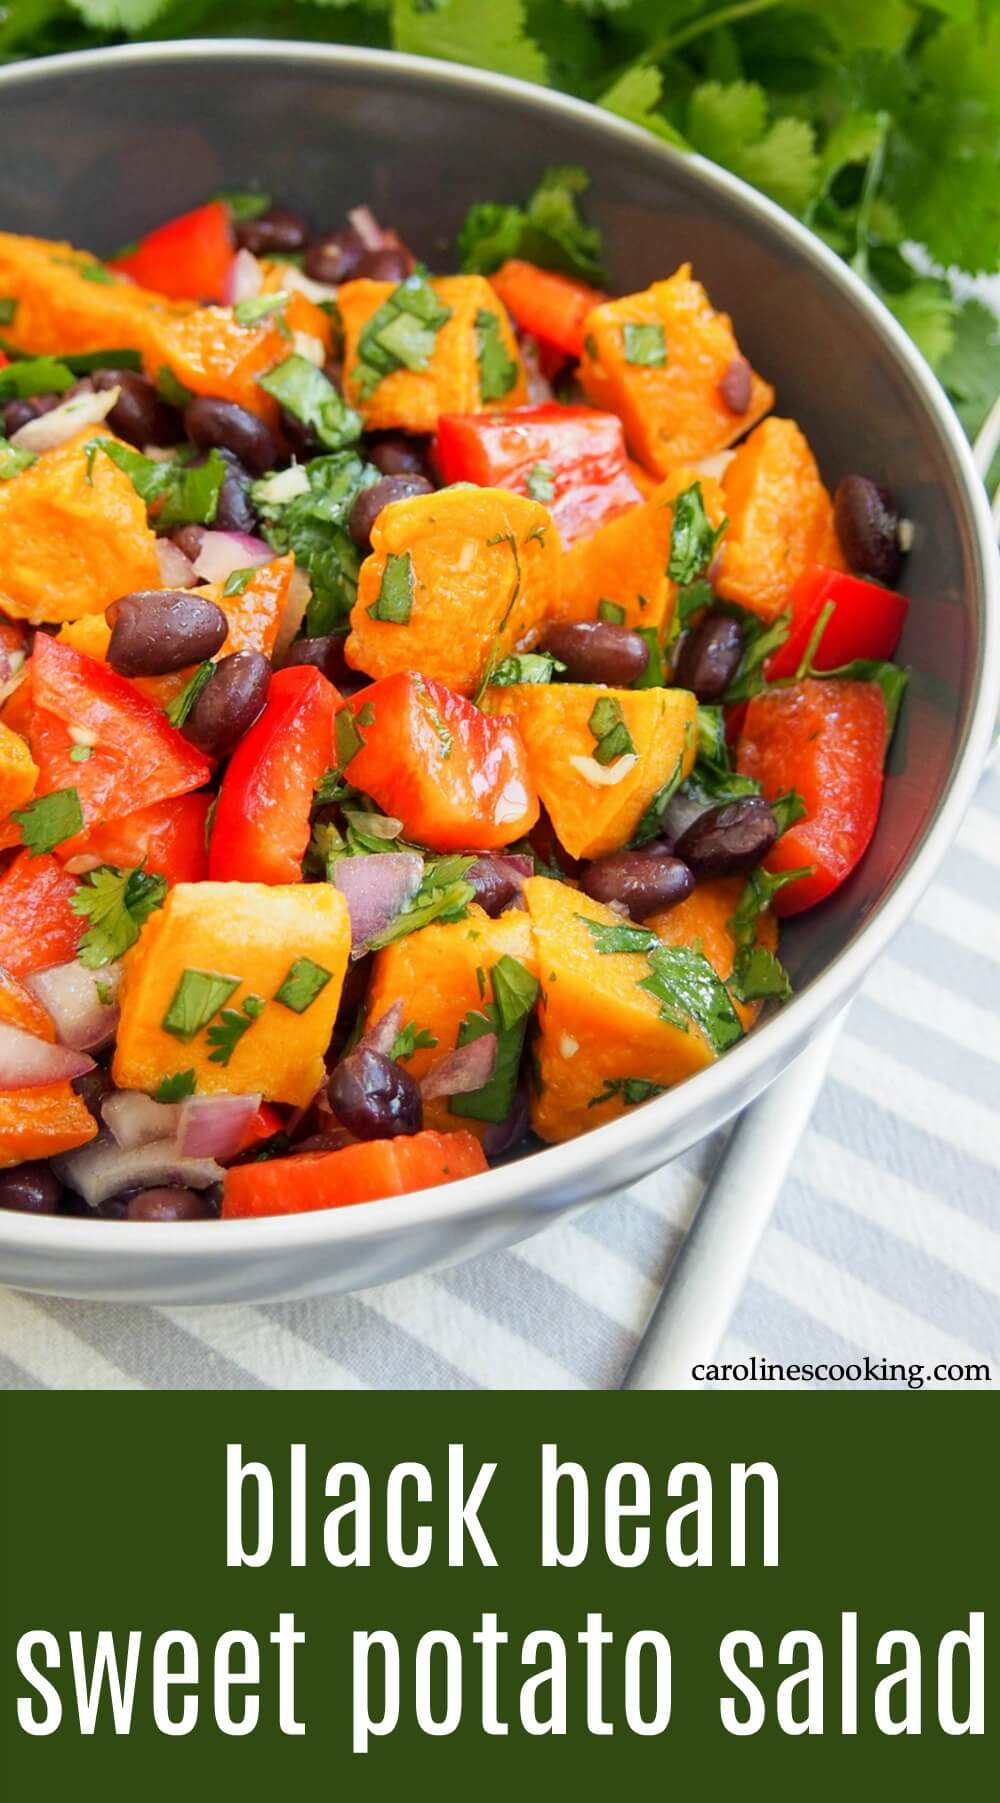 This black bean sweet potato salad is bright, hearty without being heavy, and with delicious fresh flavors. It's perfect for lunch, or as a side and travels well, too. #salad #sweetpotato #vegetarian #vegan #healthyeating